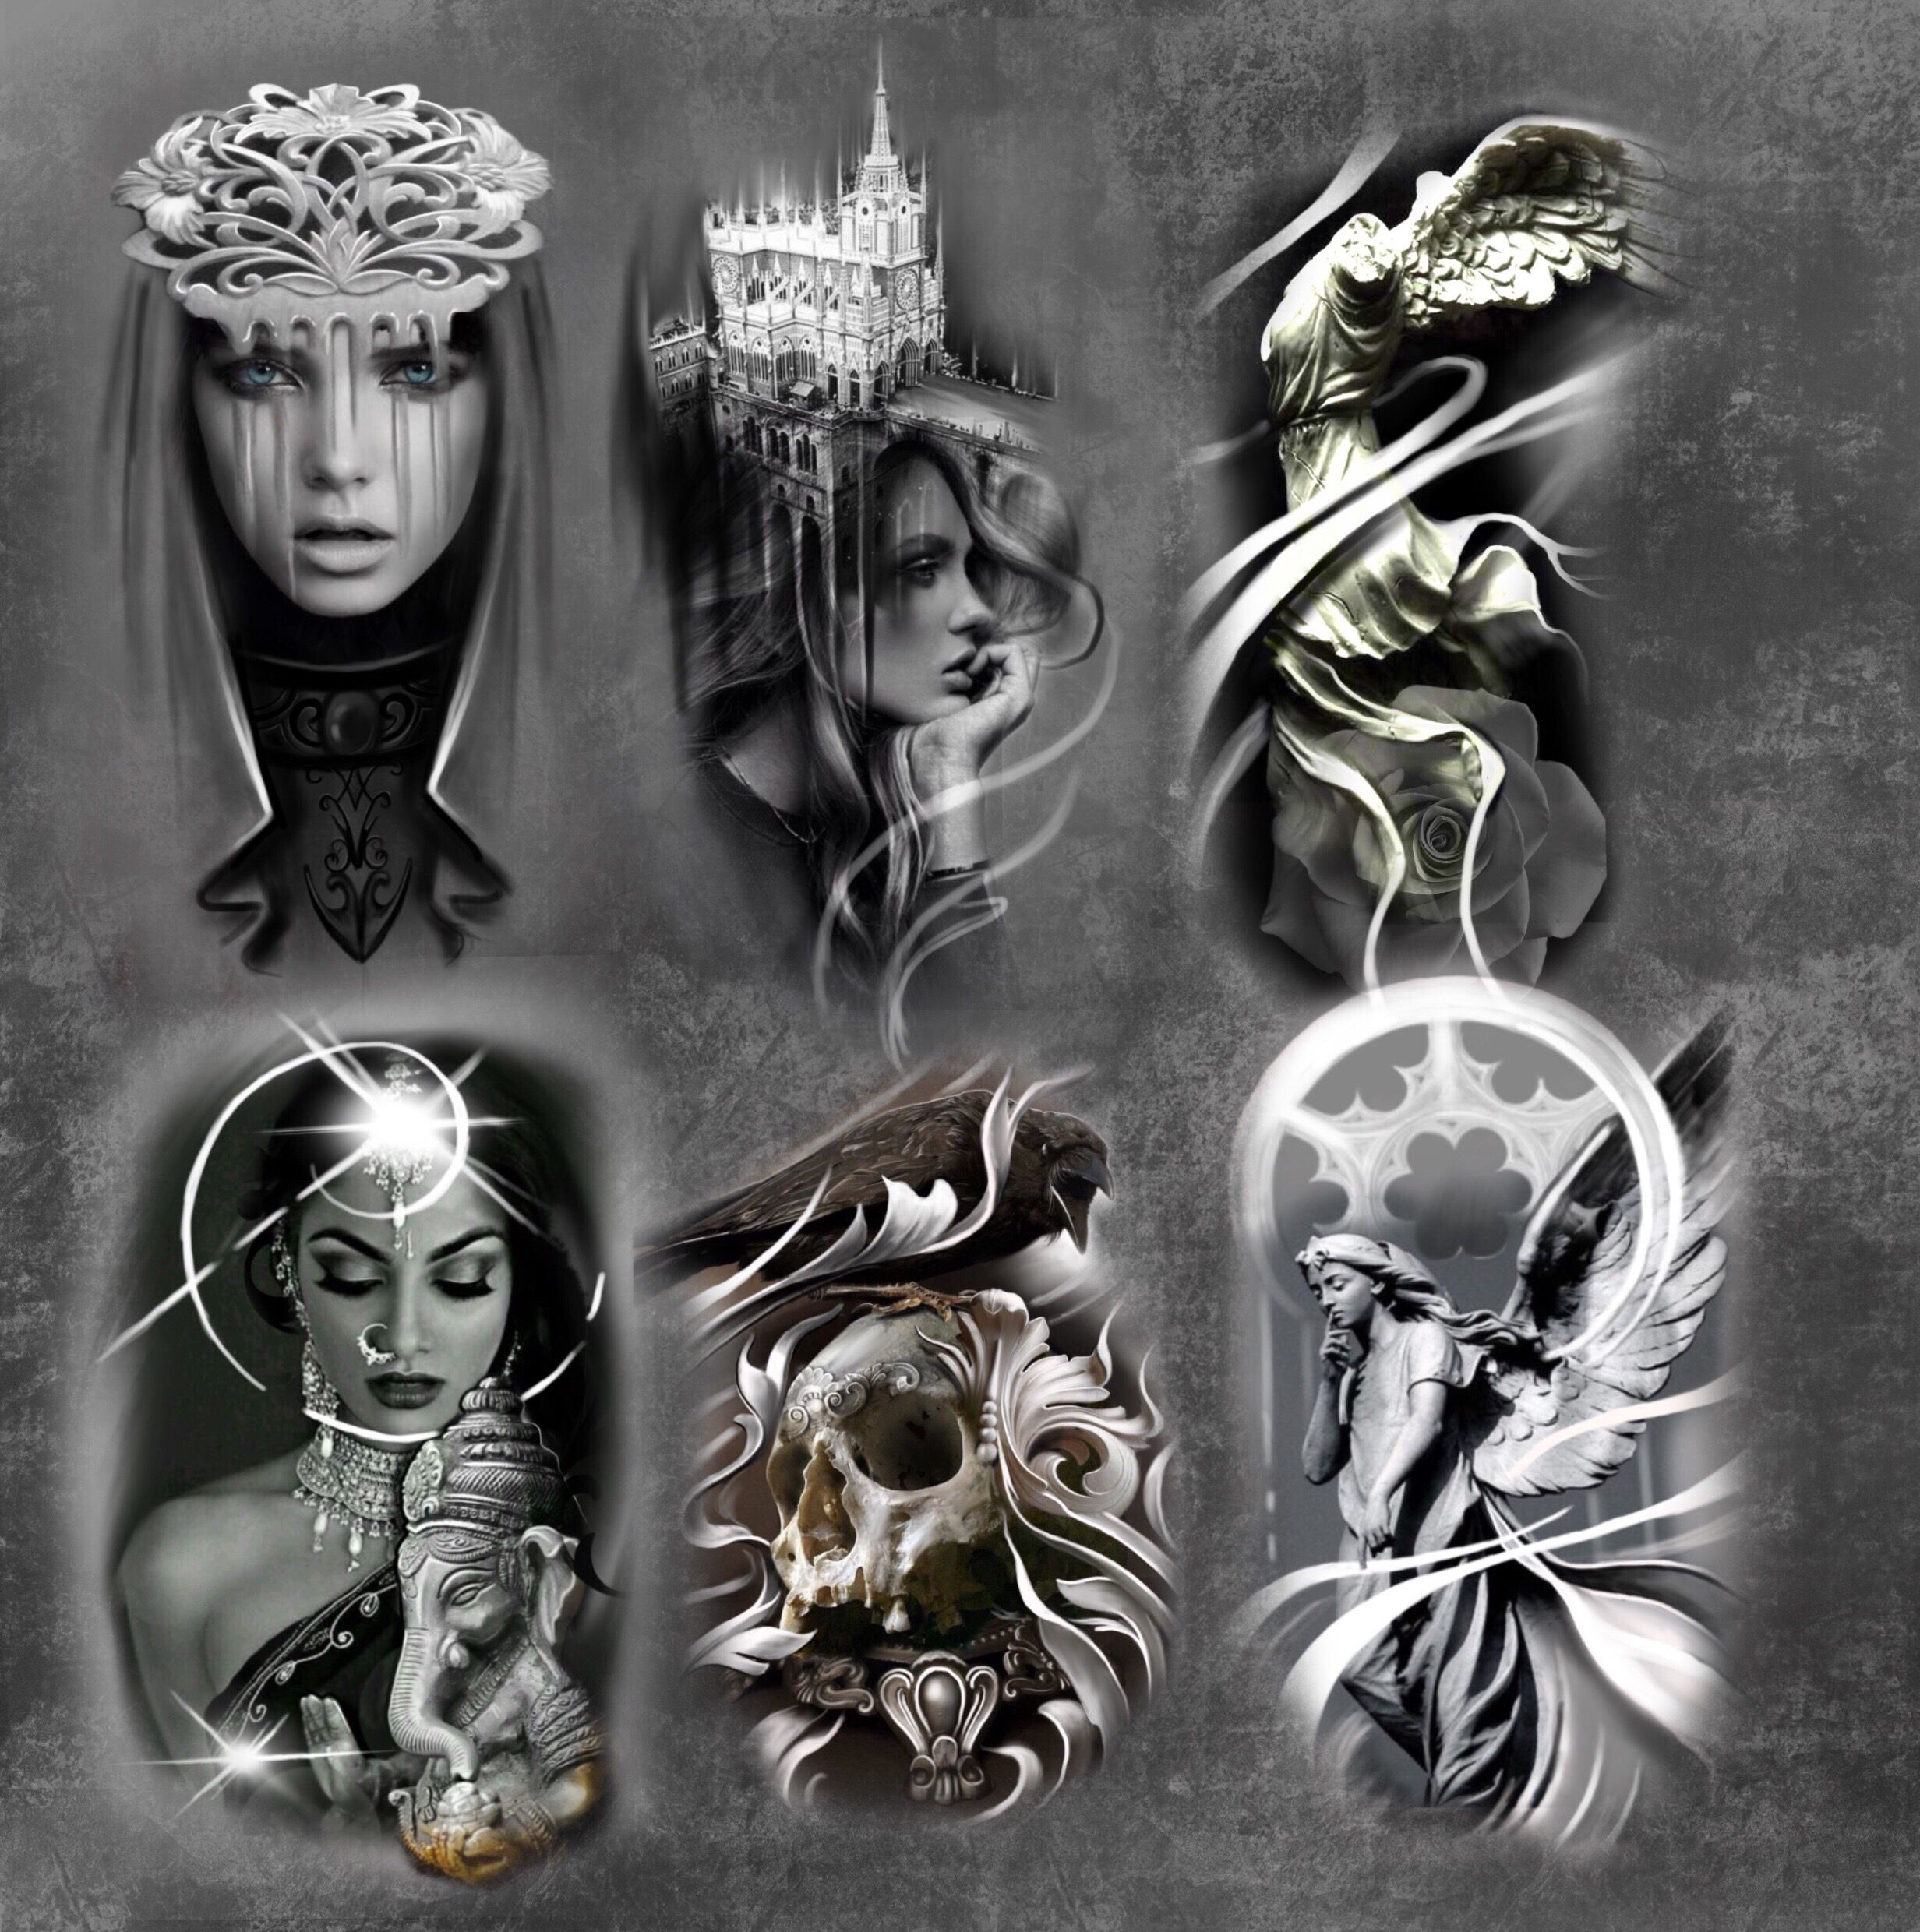 Pin By Andrew Mougios On Tattoos Pinterest Tattoo Designs